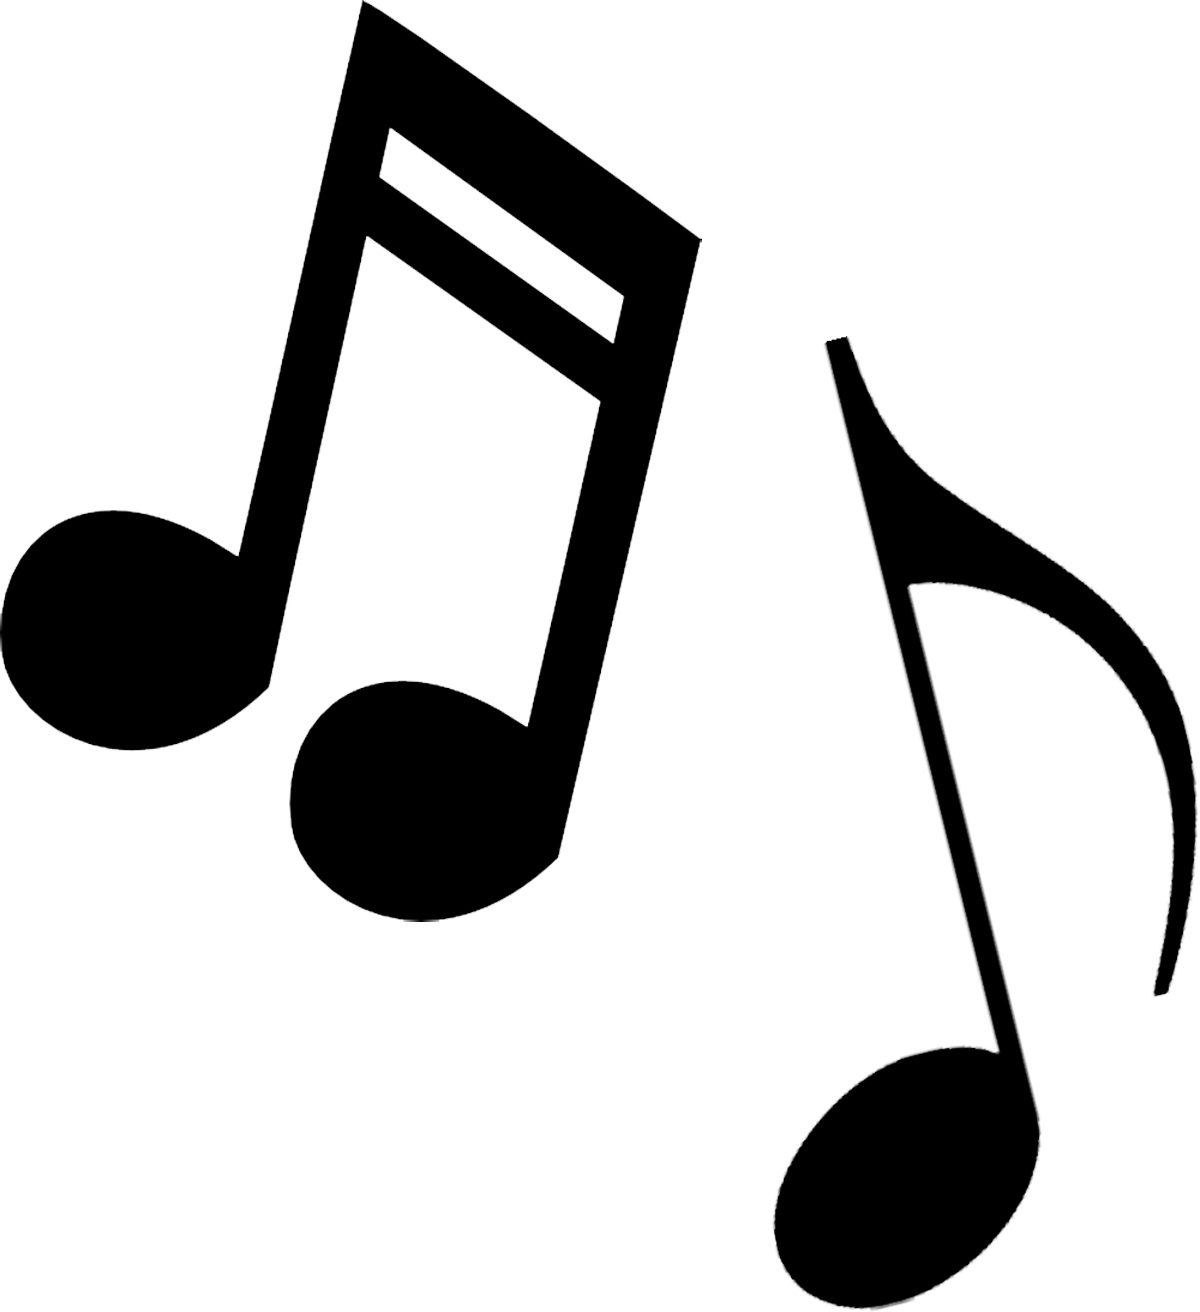 Transparent music notes png. Musical clip art free